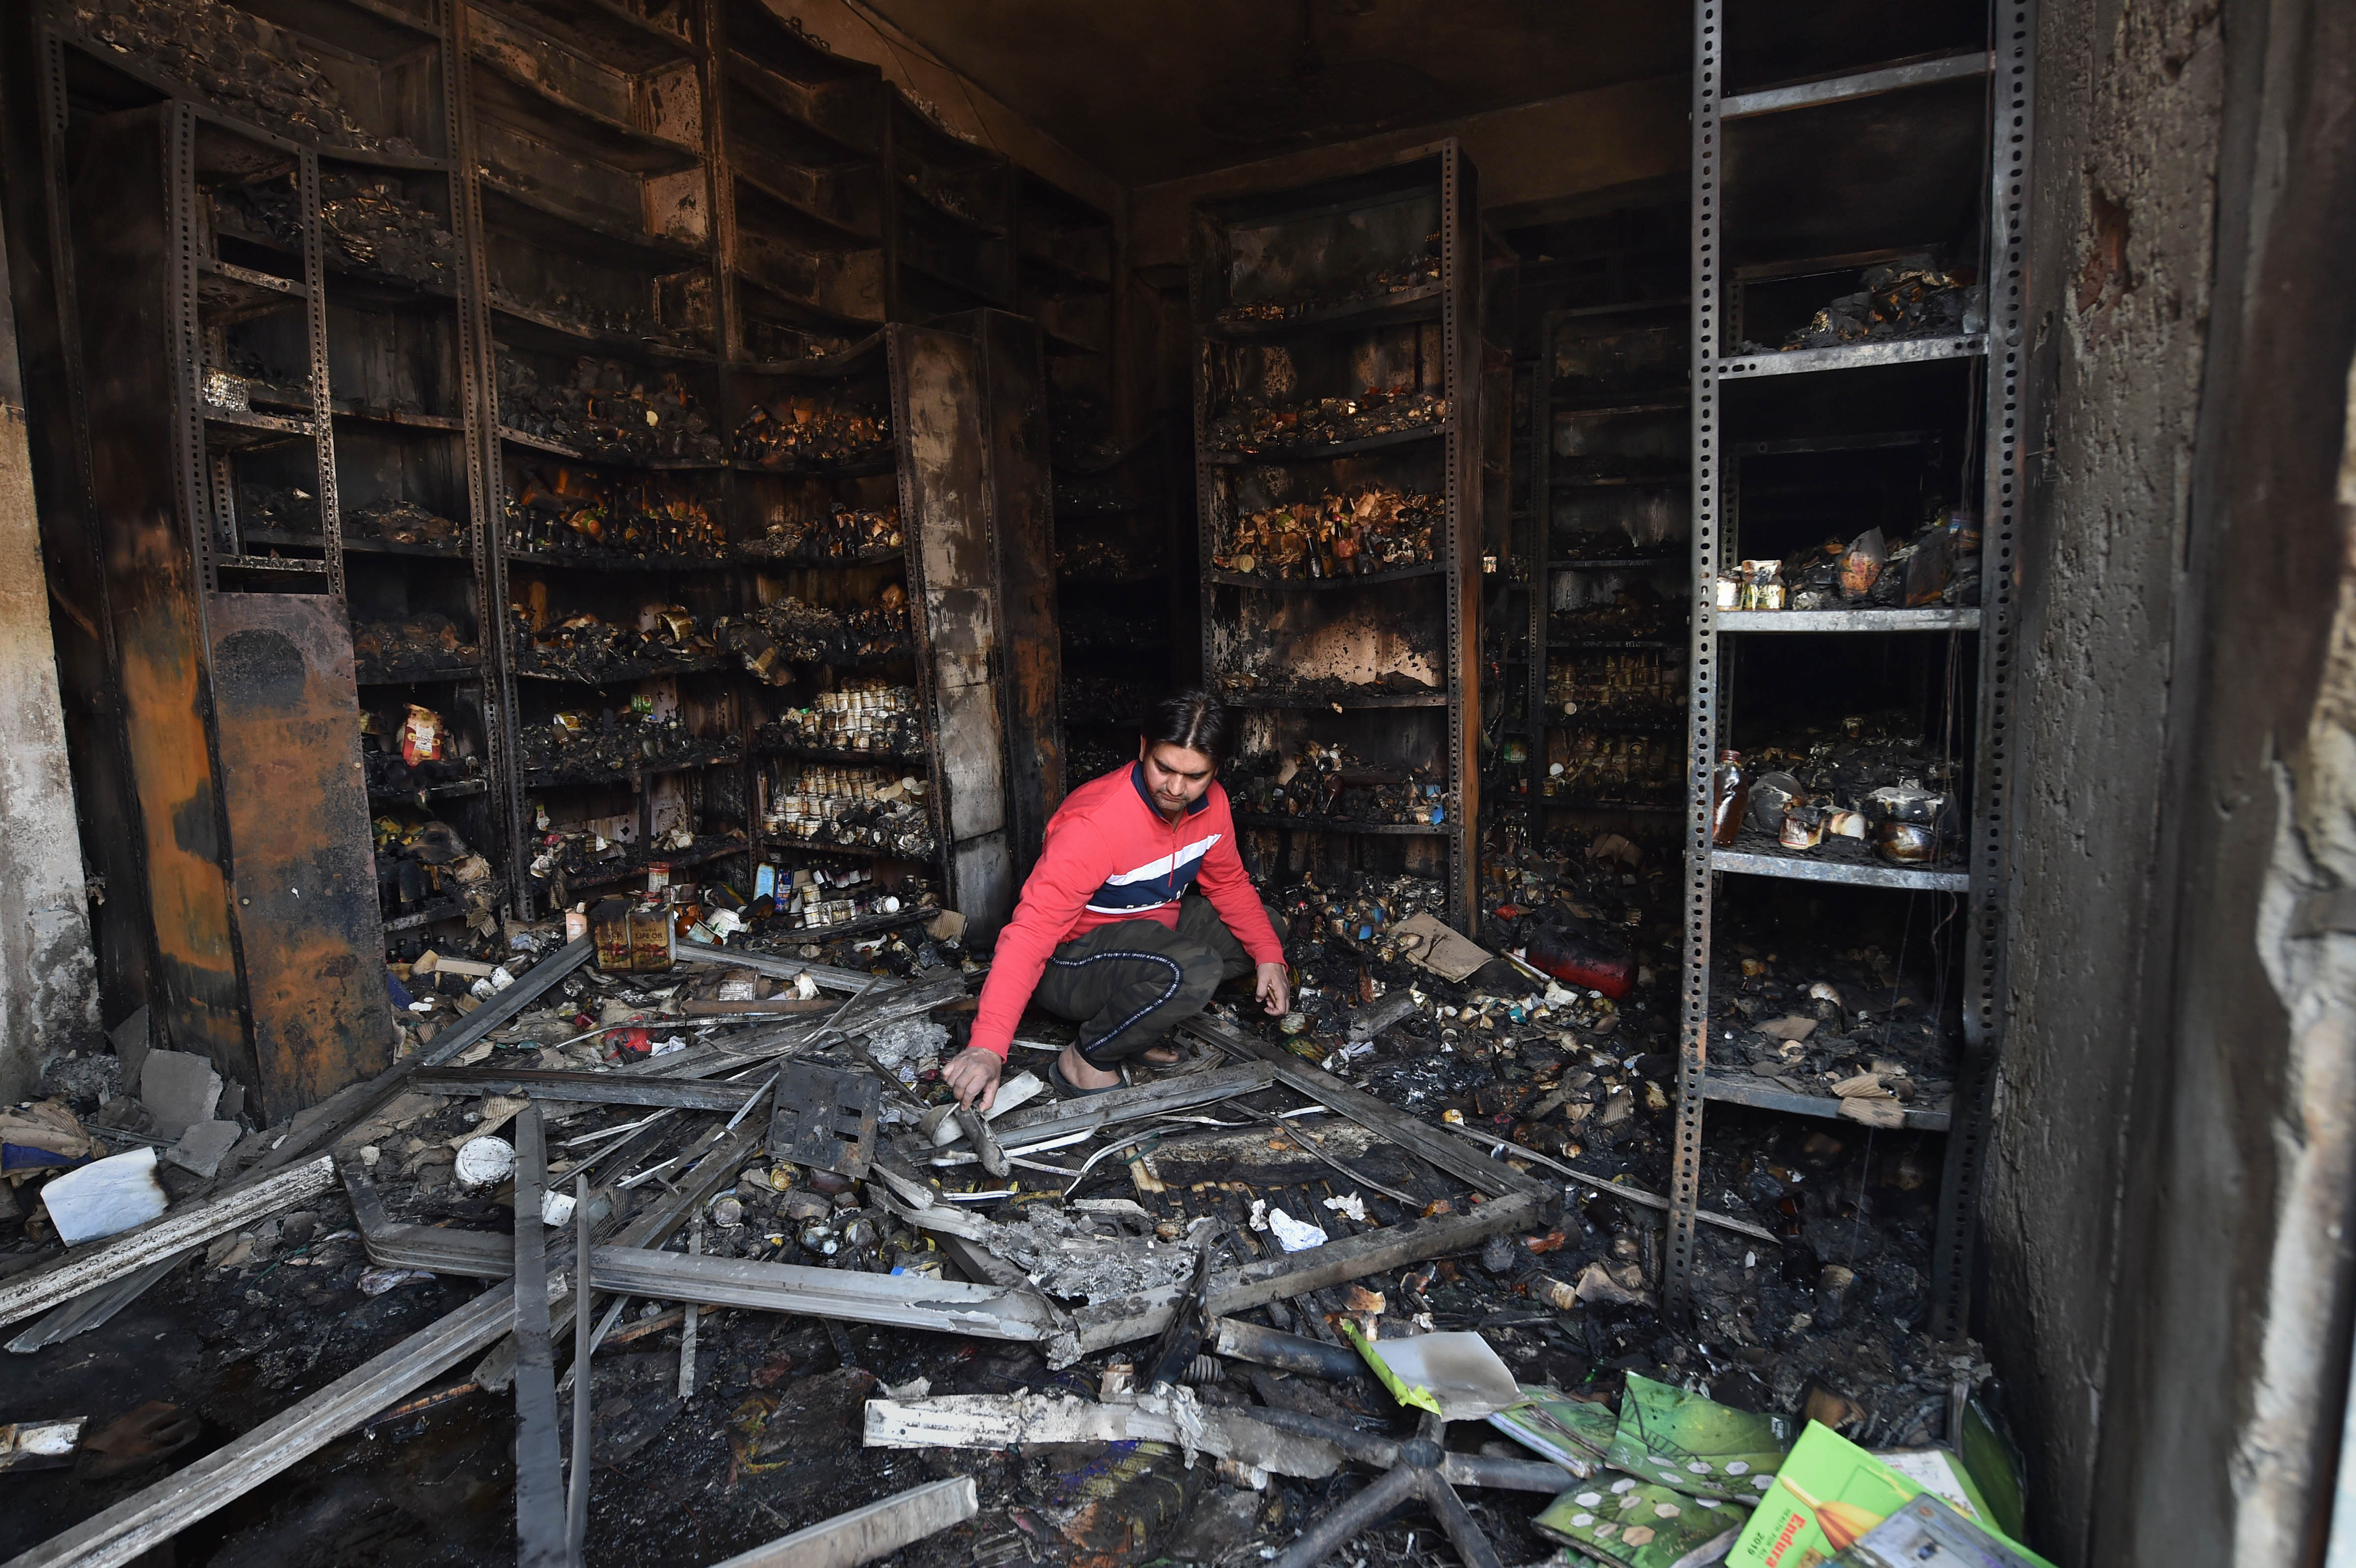 A shopkeeper sorts through the charred remains of a vandalized and burned shop, following the riots, at Khajuri Khas extension area of northeast Delhi, Friday, February 28, 2020. There were some areas of normalcy in the riot-hit localities of northeast Delhi with shops opening.